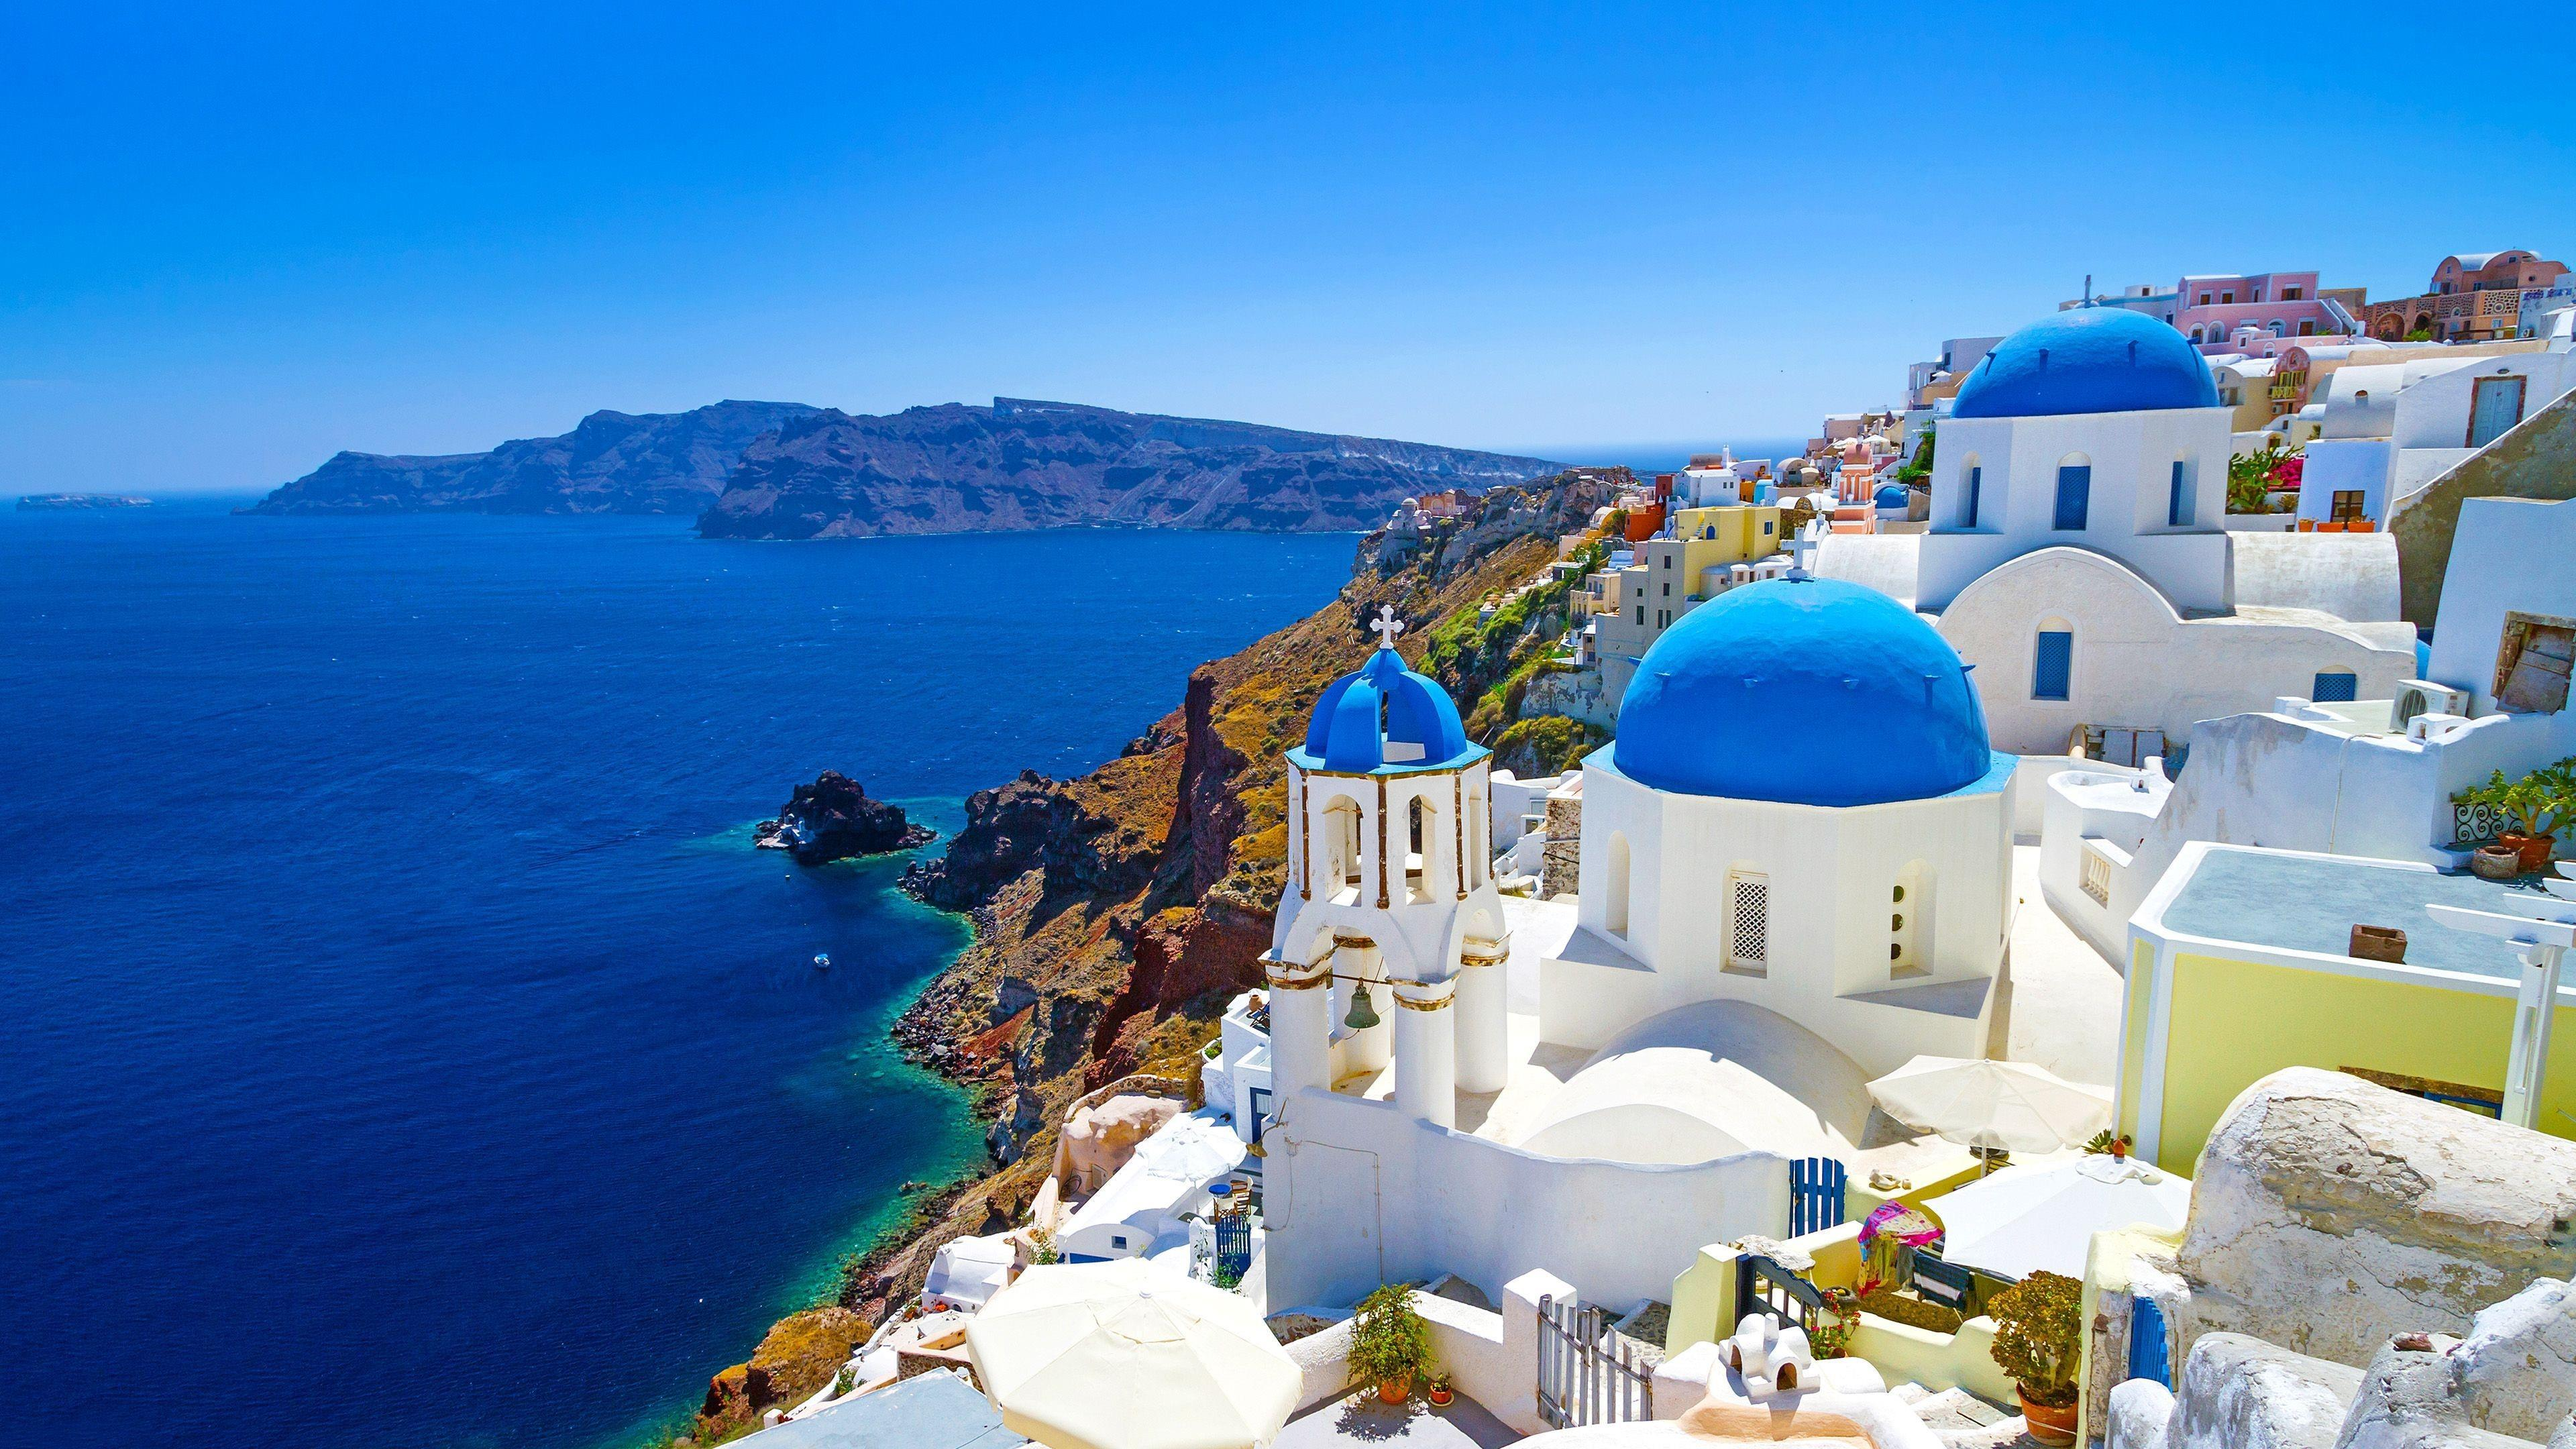 Santorini Greece Wallpapers   Top Santorini Greece 3840x2160